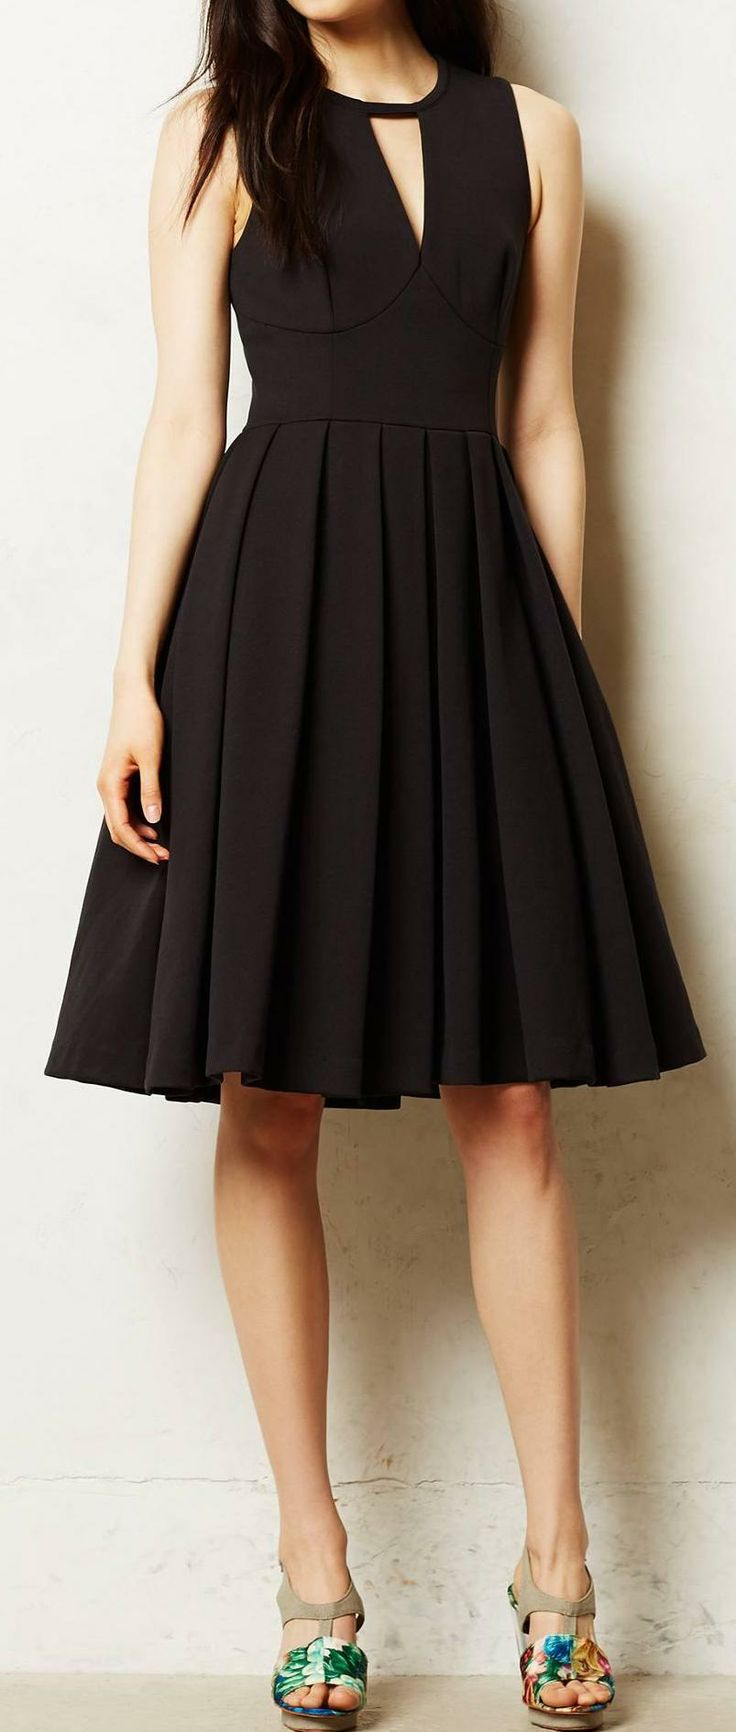 Anthropologie Little Black Dress ♡ #lbd: Black Style, Black Pleated, Awesome Shoes, Classic Lbd, Anthropologie Lilou, Little Black Dresses, Little Black Dress Classic, Black Love, Classic Little Black Dress